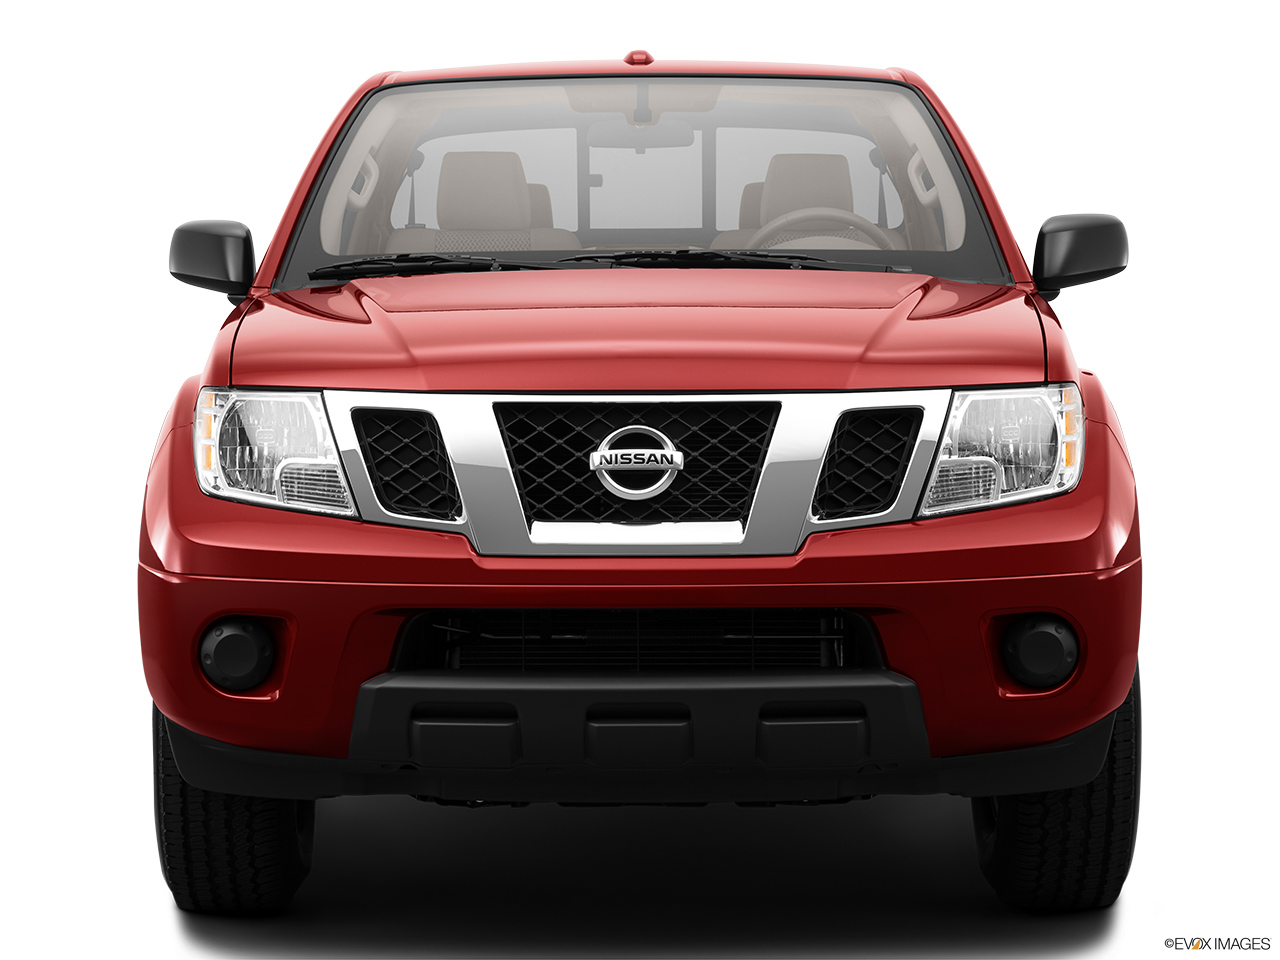 2014 nissan frontier 4wd crew cab swb automatic sv. Black Bedroom Furniture Sets. Home Design Ideas